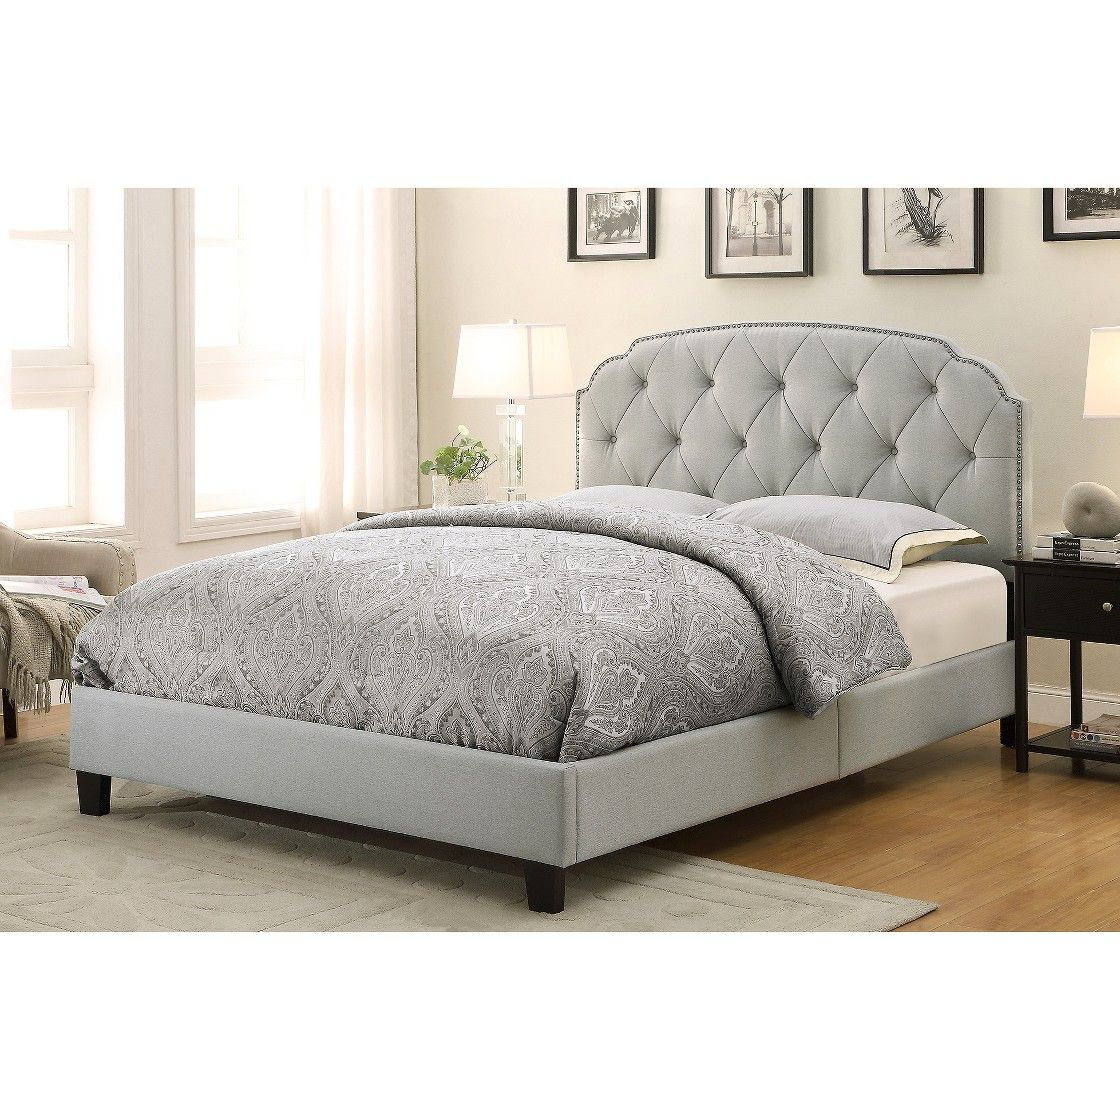 Upholstered AllInOne Bed Trespass Marmor (Queen) (With